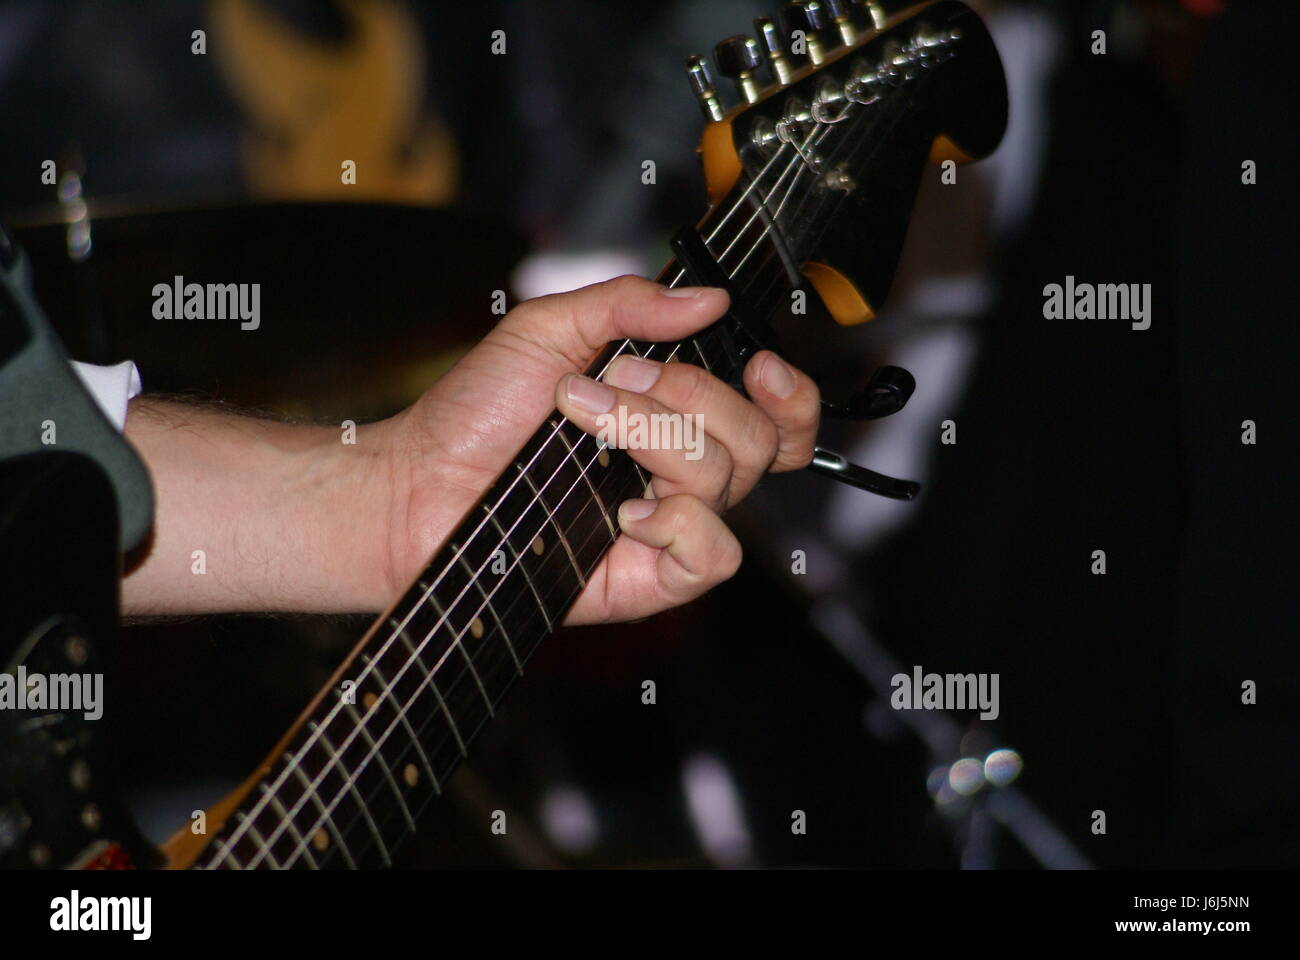 Music Musician Guitar Show Chord Band Music Group Hand Finger Game